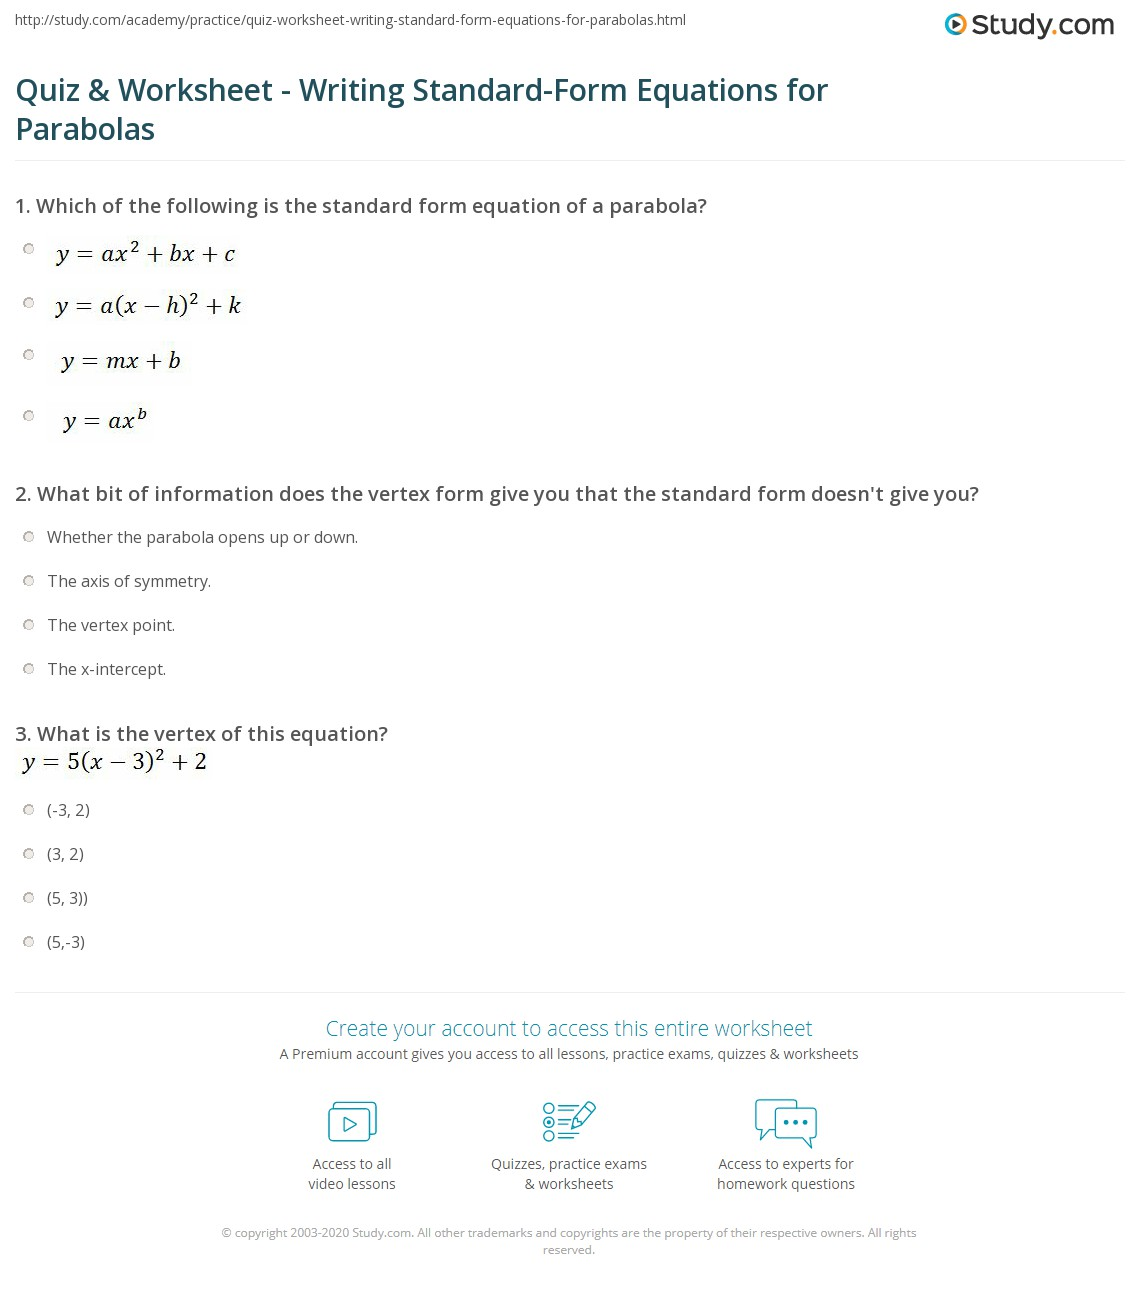 Printables Parabolas Worksheet quiz worksheet writing standard form equations for parabolas print definition explanation worksheet